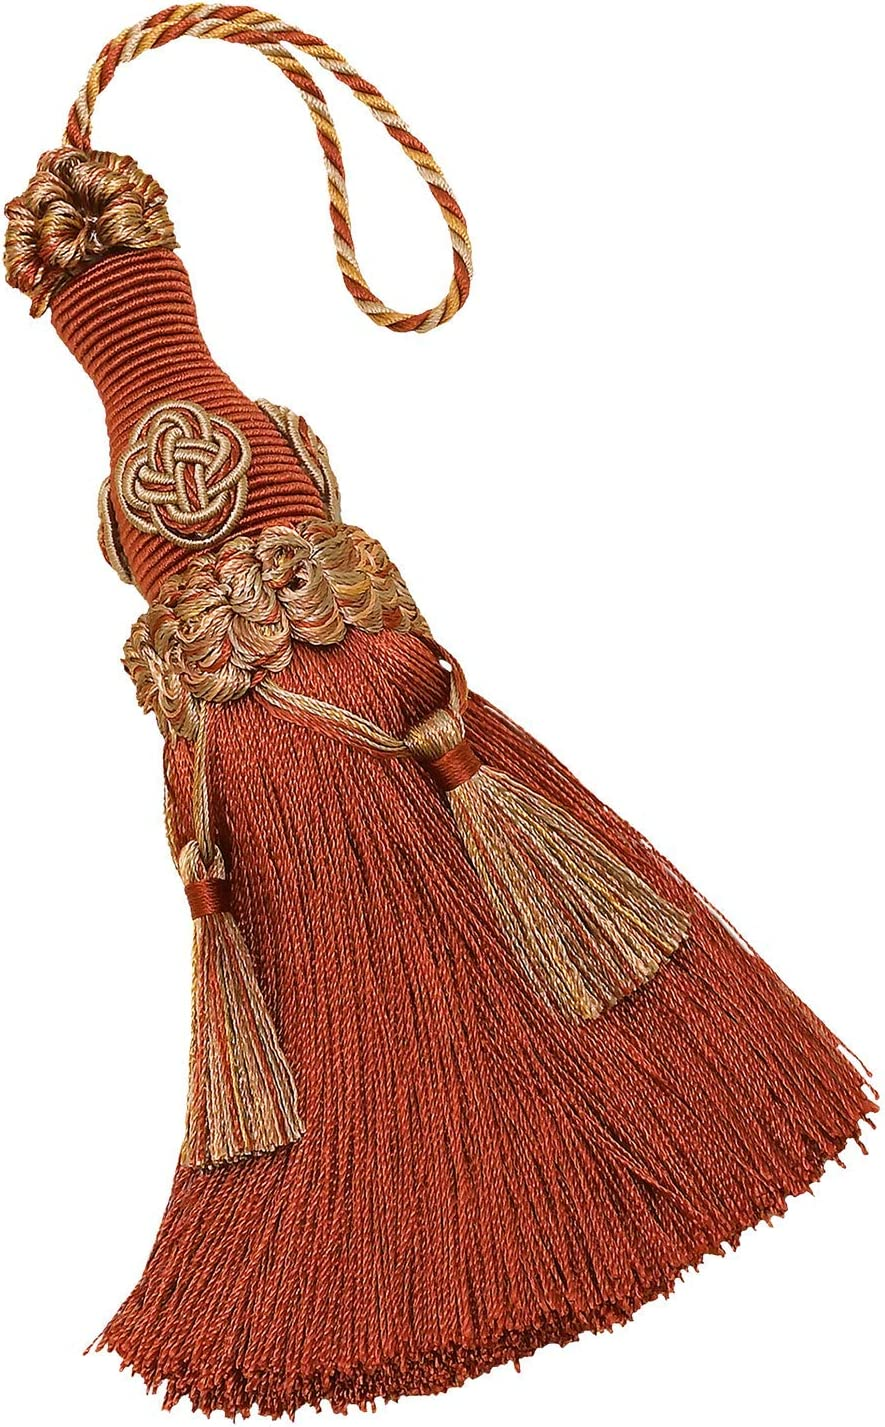 DÉCOPRO Decorative 6 inch Key Tassel/Rust Gold/Baroque Collection Style# BKT Color: Cinnamon Toast - 6122